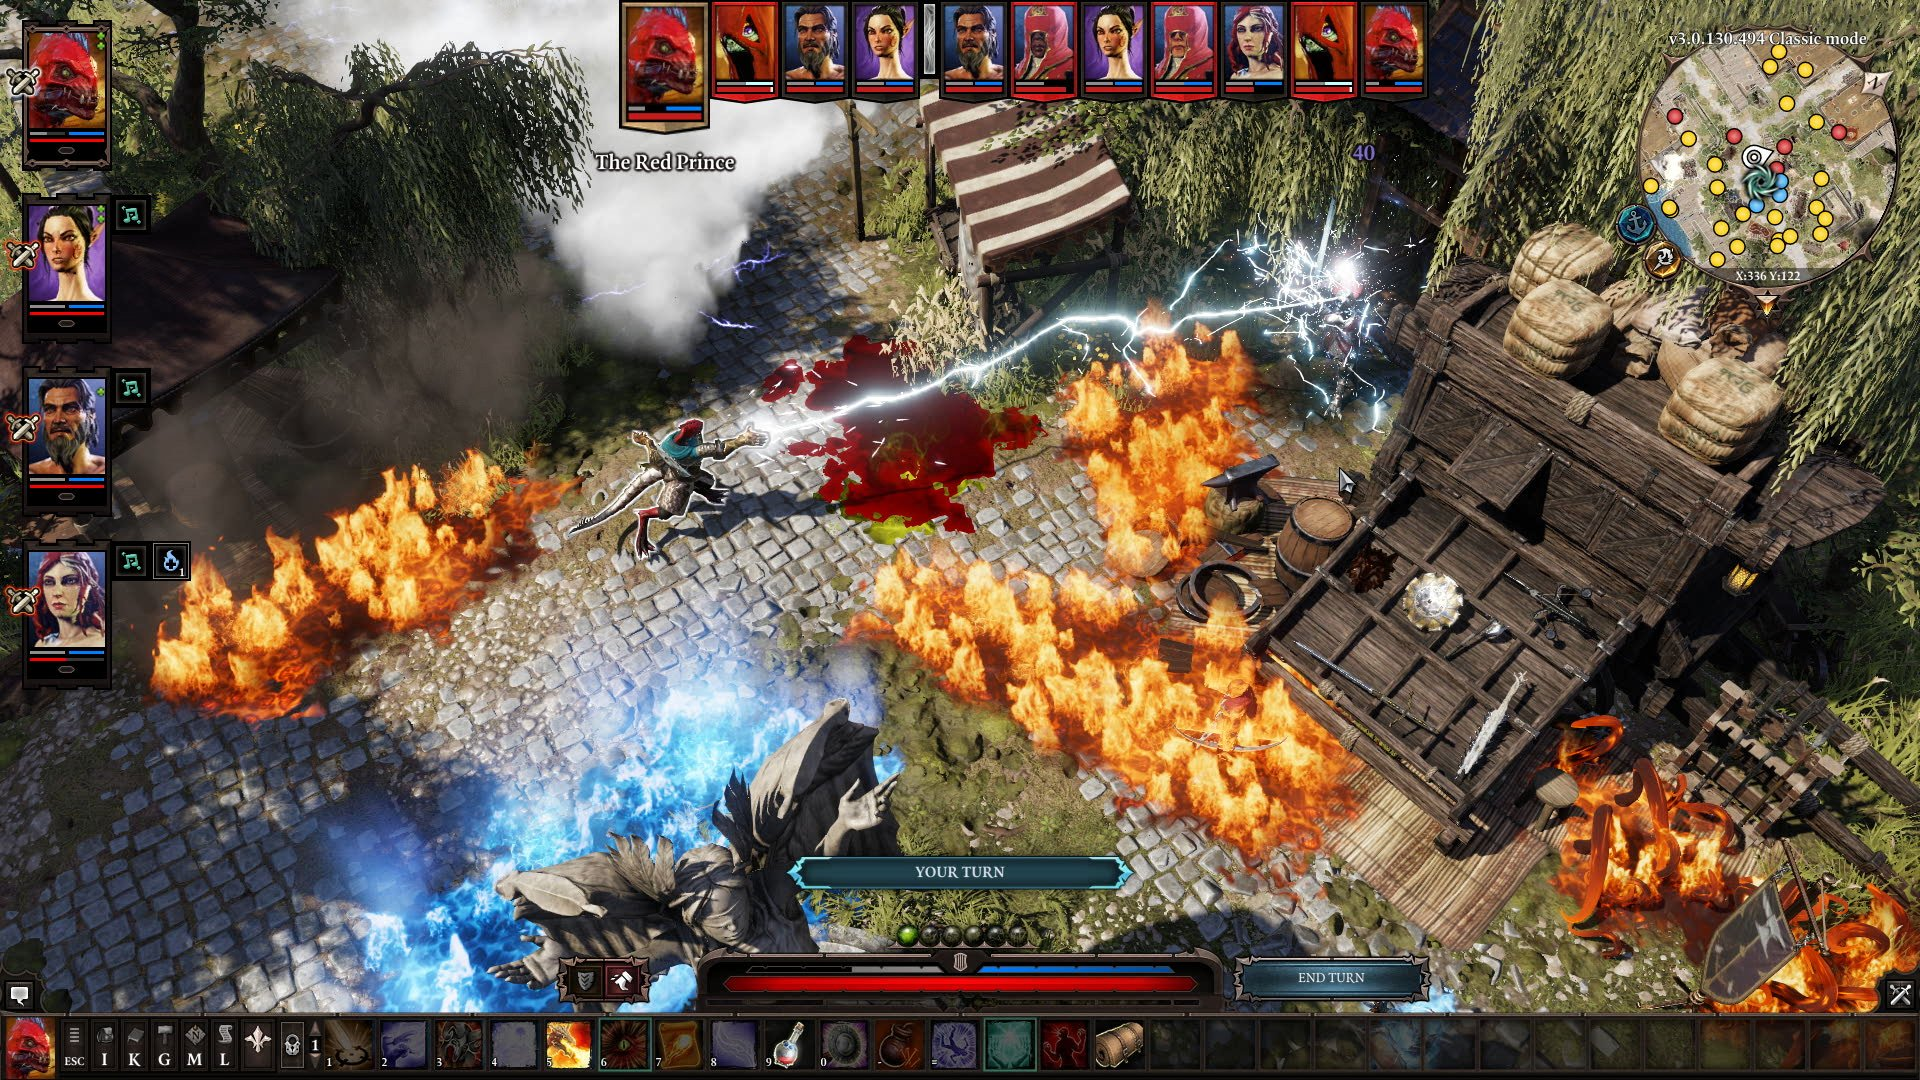 Divinity Original Sin 2 available now on Switch